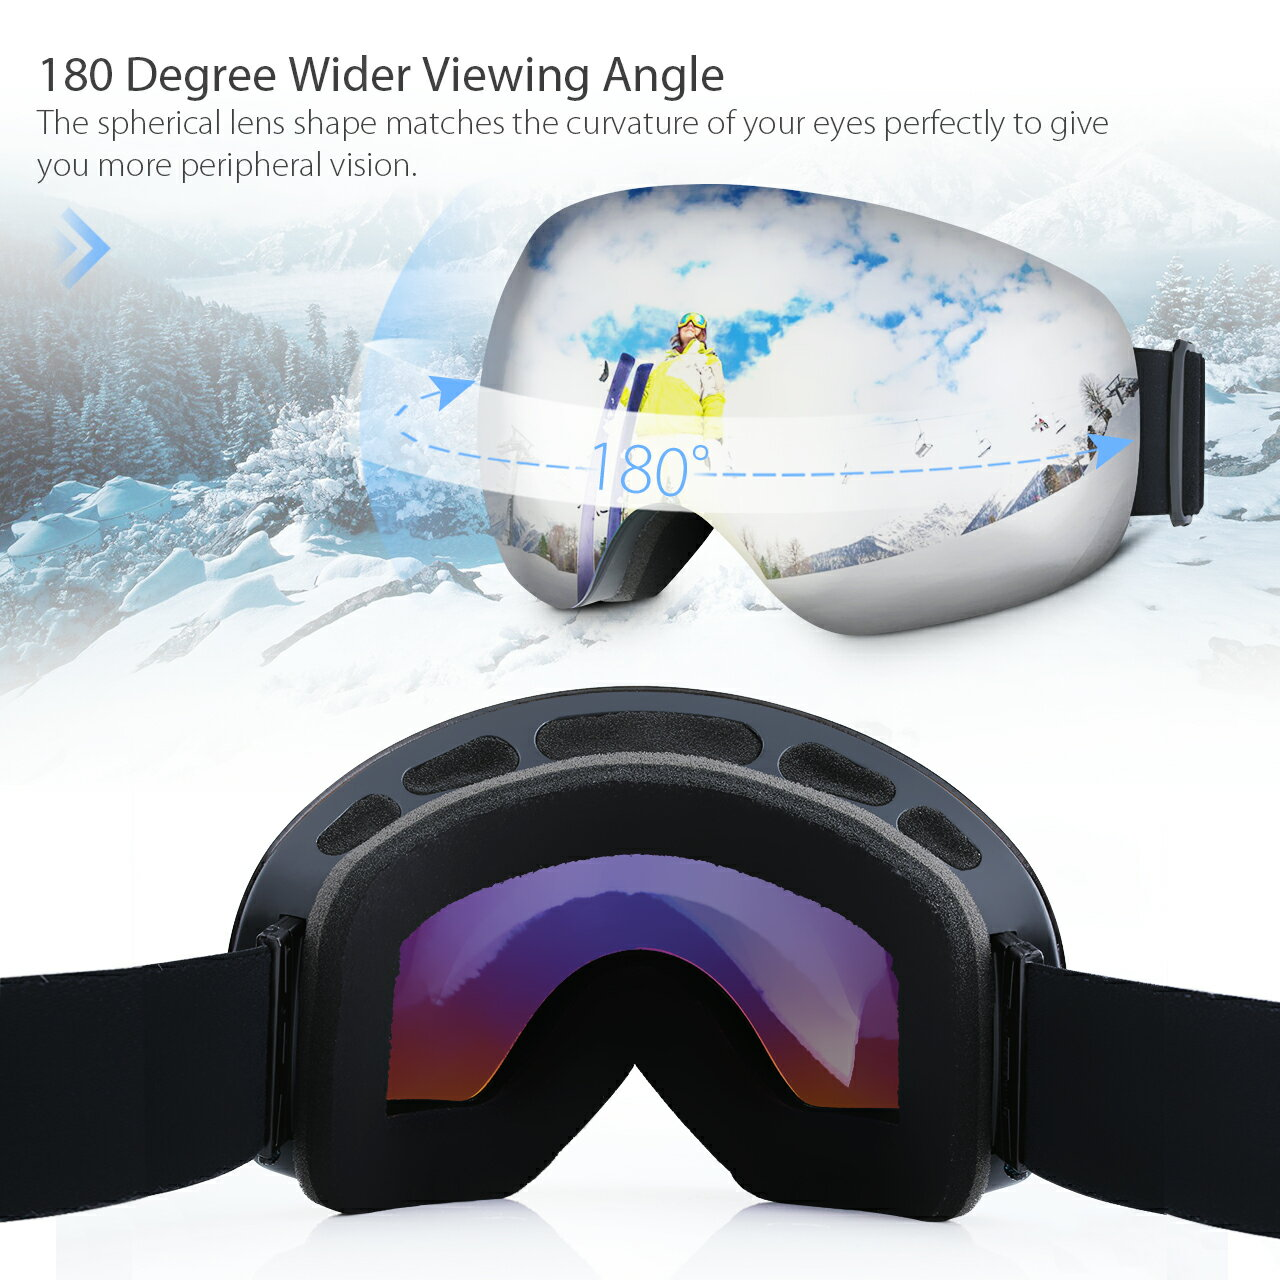 Adult Ski Snowboarding Goggles, Unisex Snow Goggles with Anti-fog and UV400 Protection Treatment, Super-wide Angle and Spherical Lens, for Men and Women 5